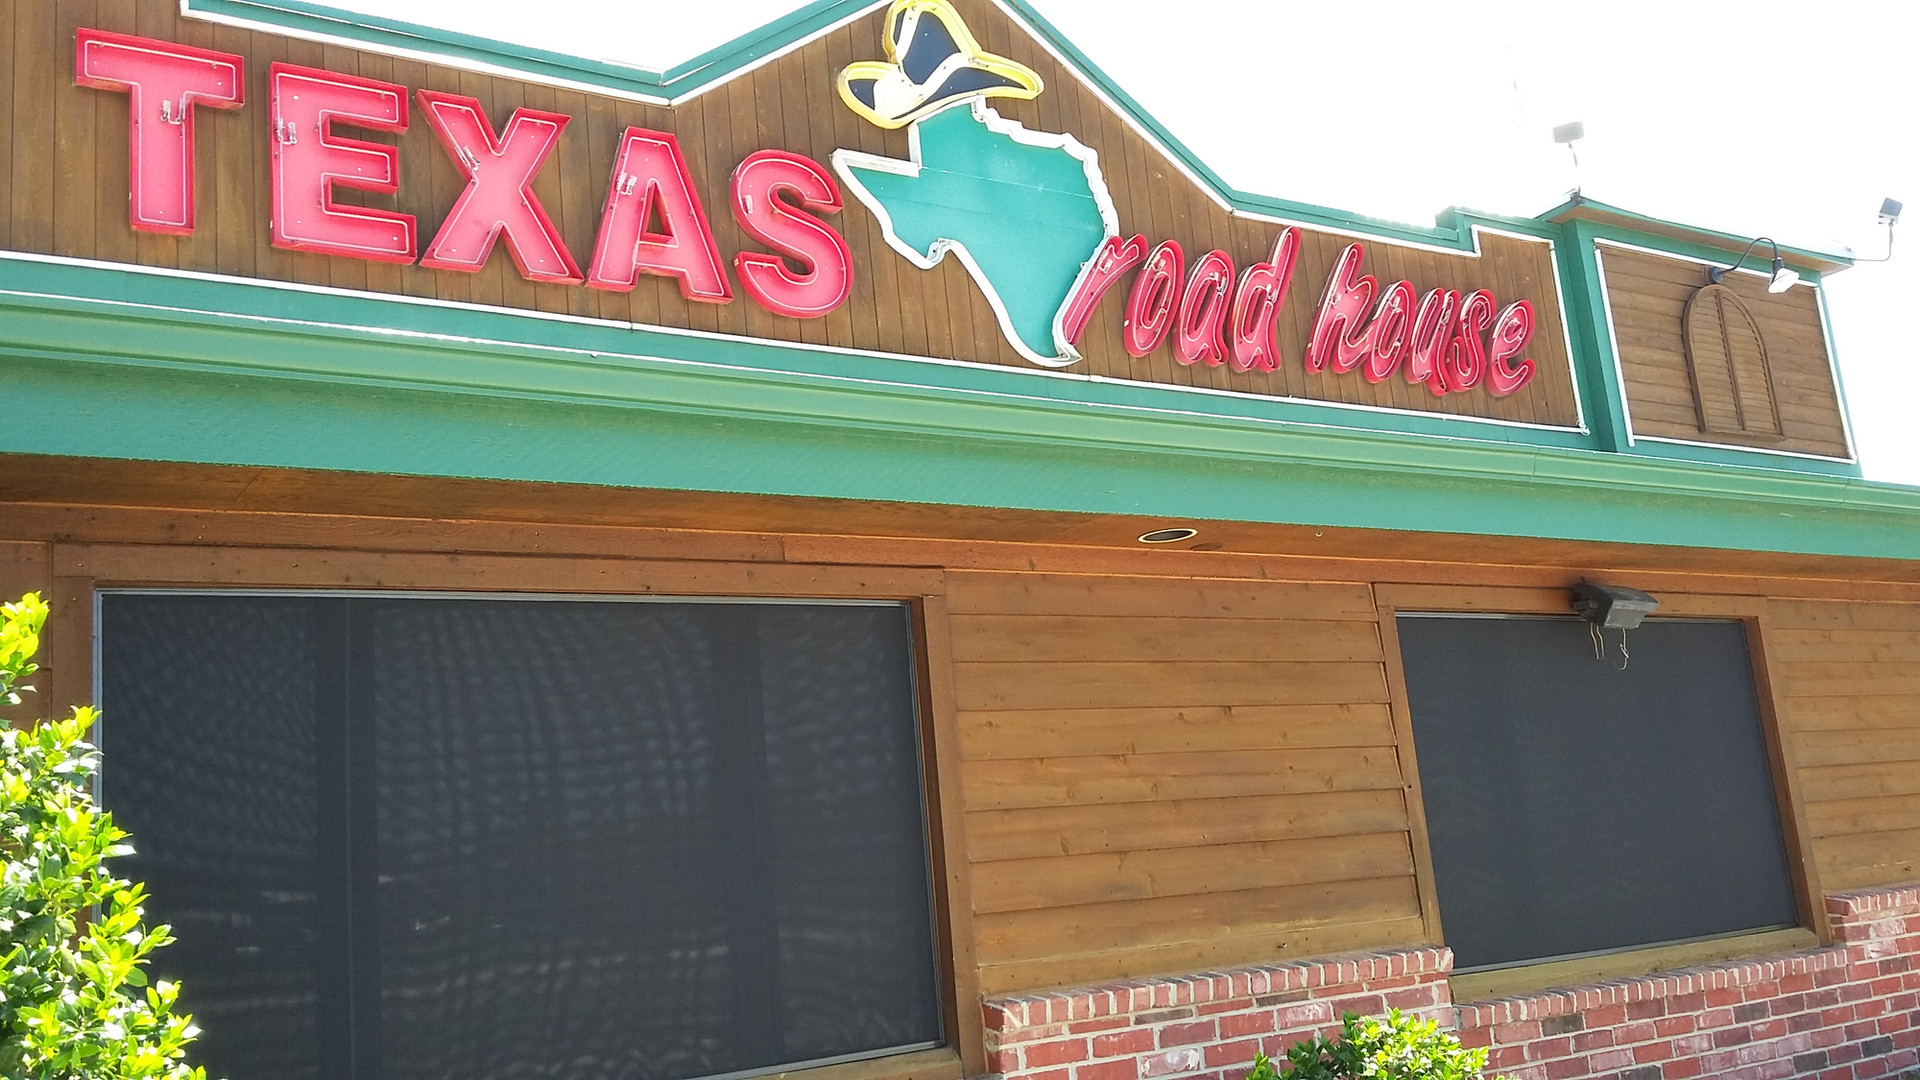 Round Rock TX restaurant being shaded by my solar screens for Windows.